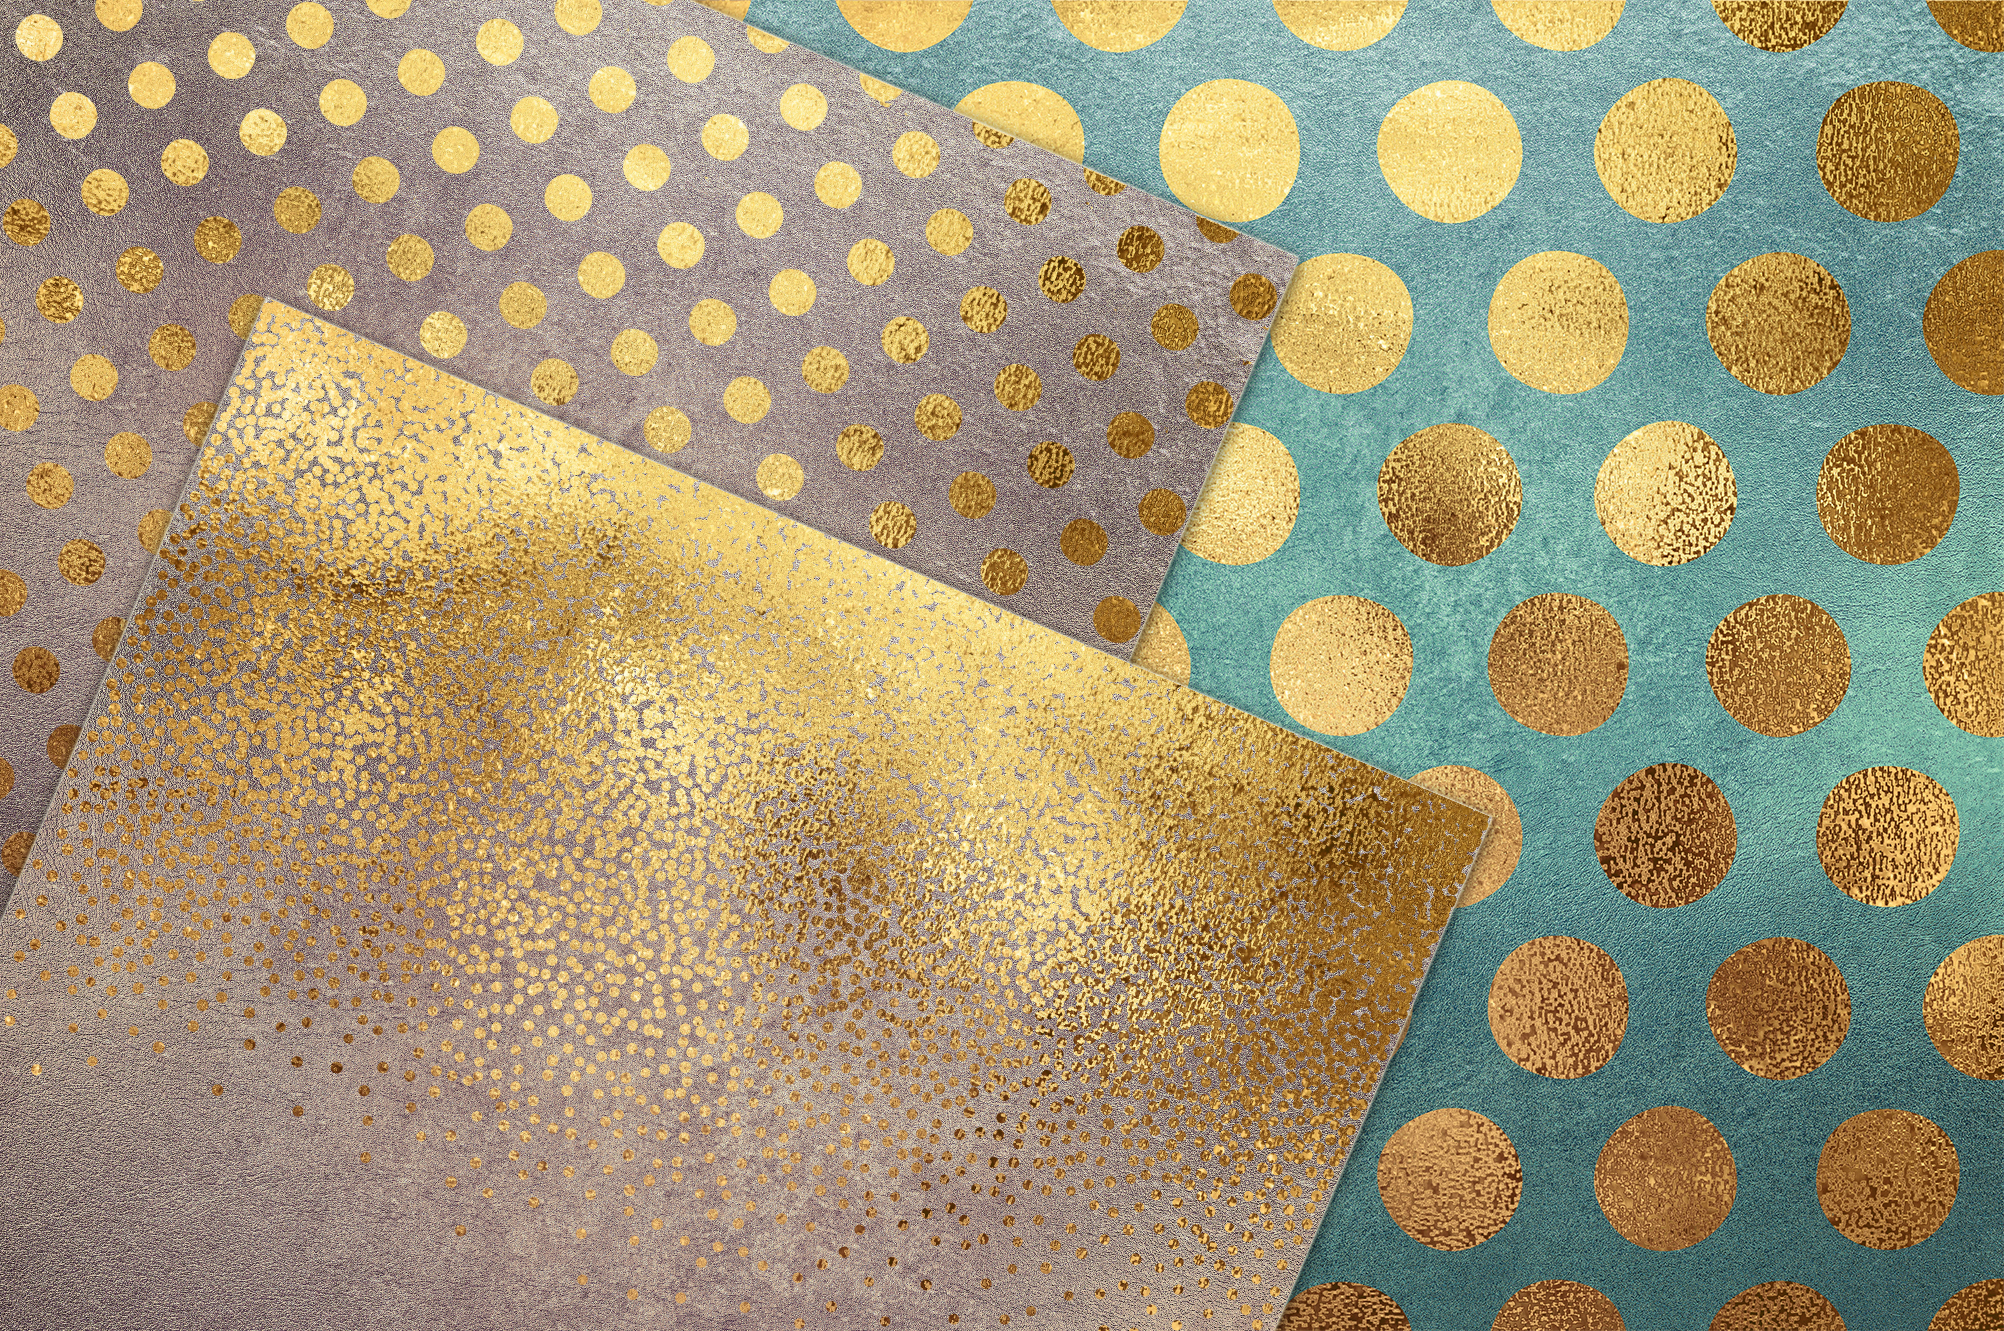 Gold Patterns example image 2